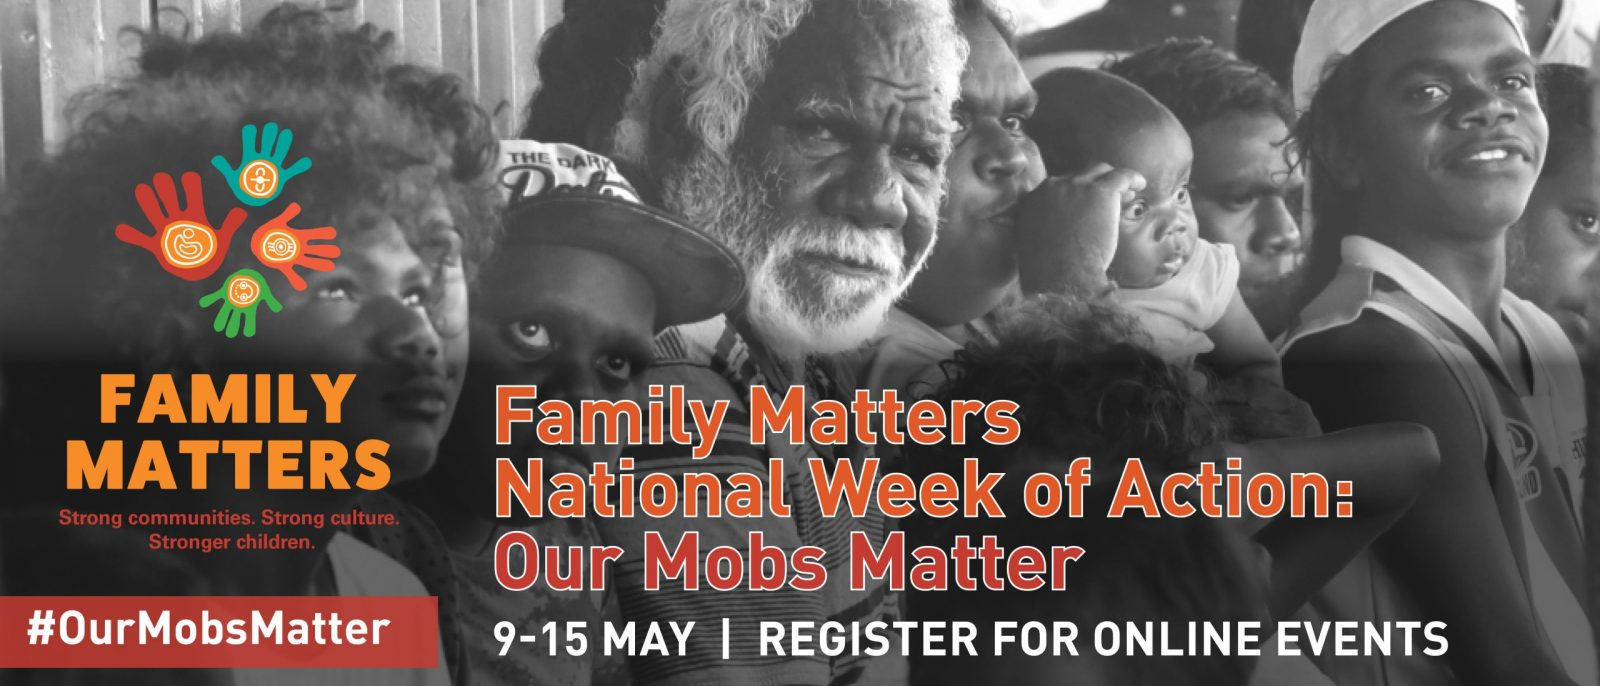 Family Matters National Week of Action